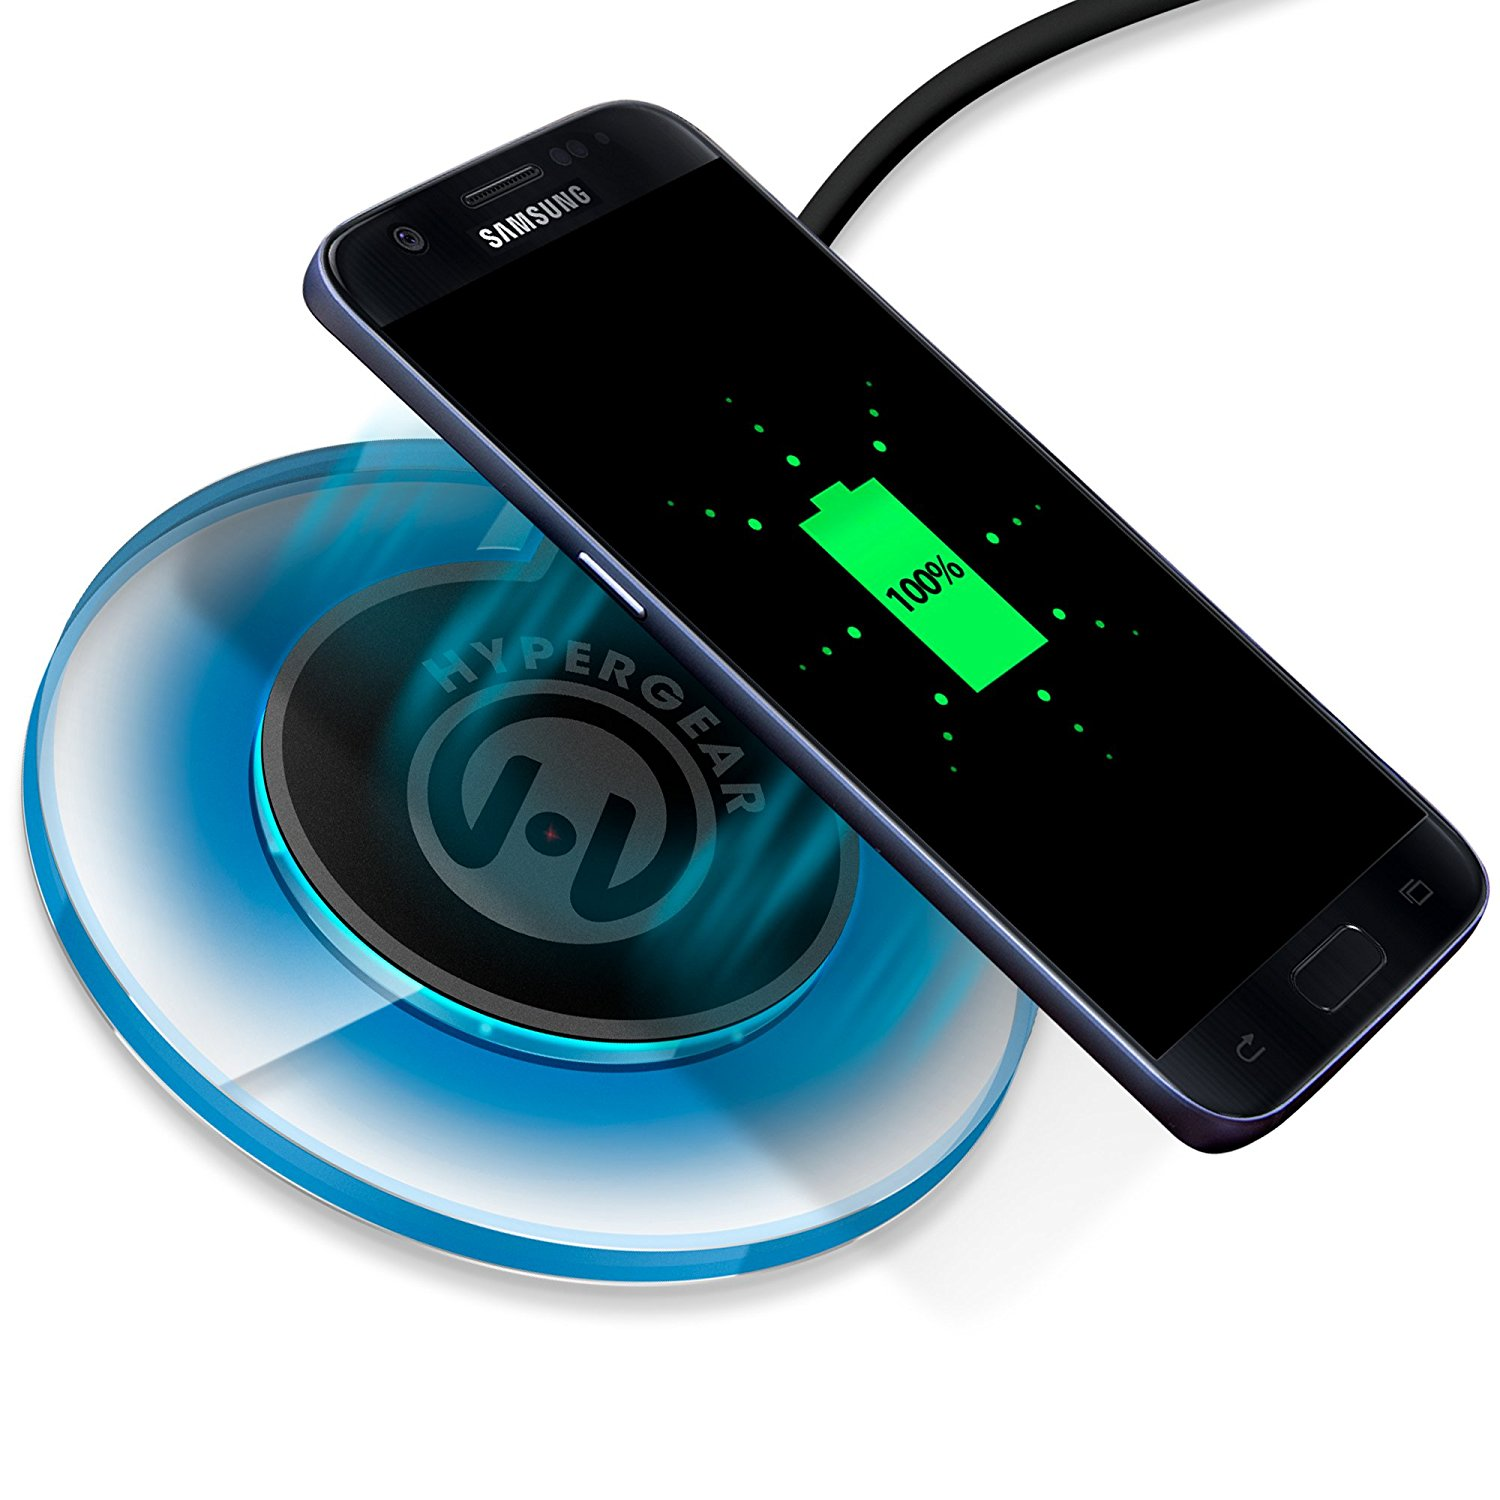 Review: HyperGear UFO wireless charging pad - TechDissected